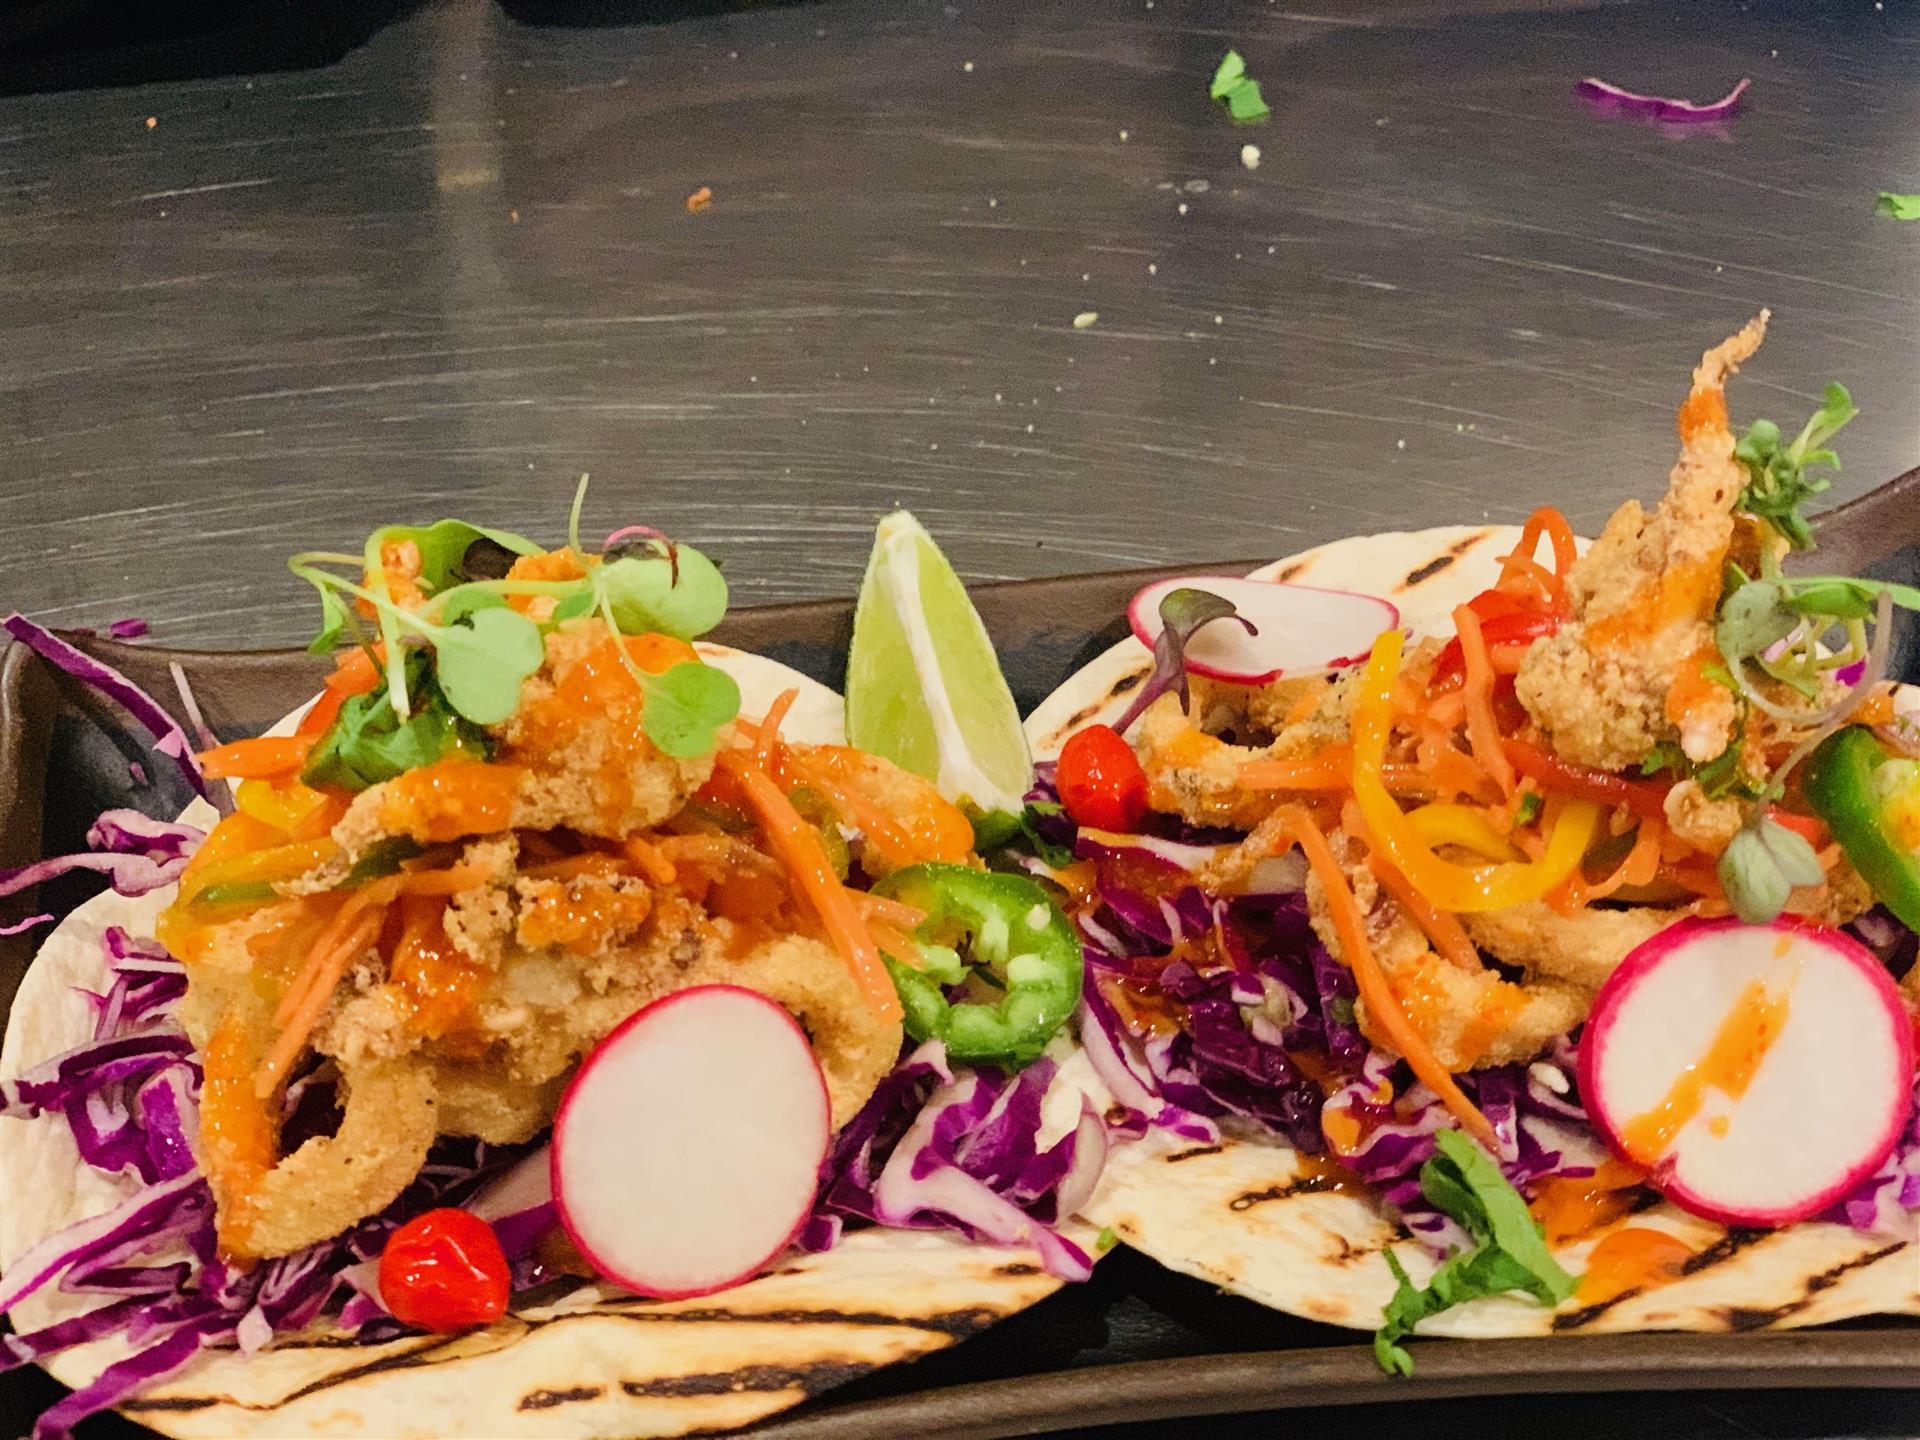 Two calamari tacos with pickled carrots, radishes, purple cabbage and jalapeños on flour tortillas